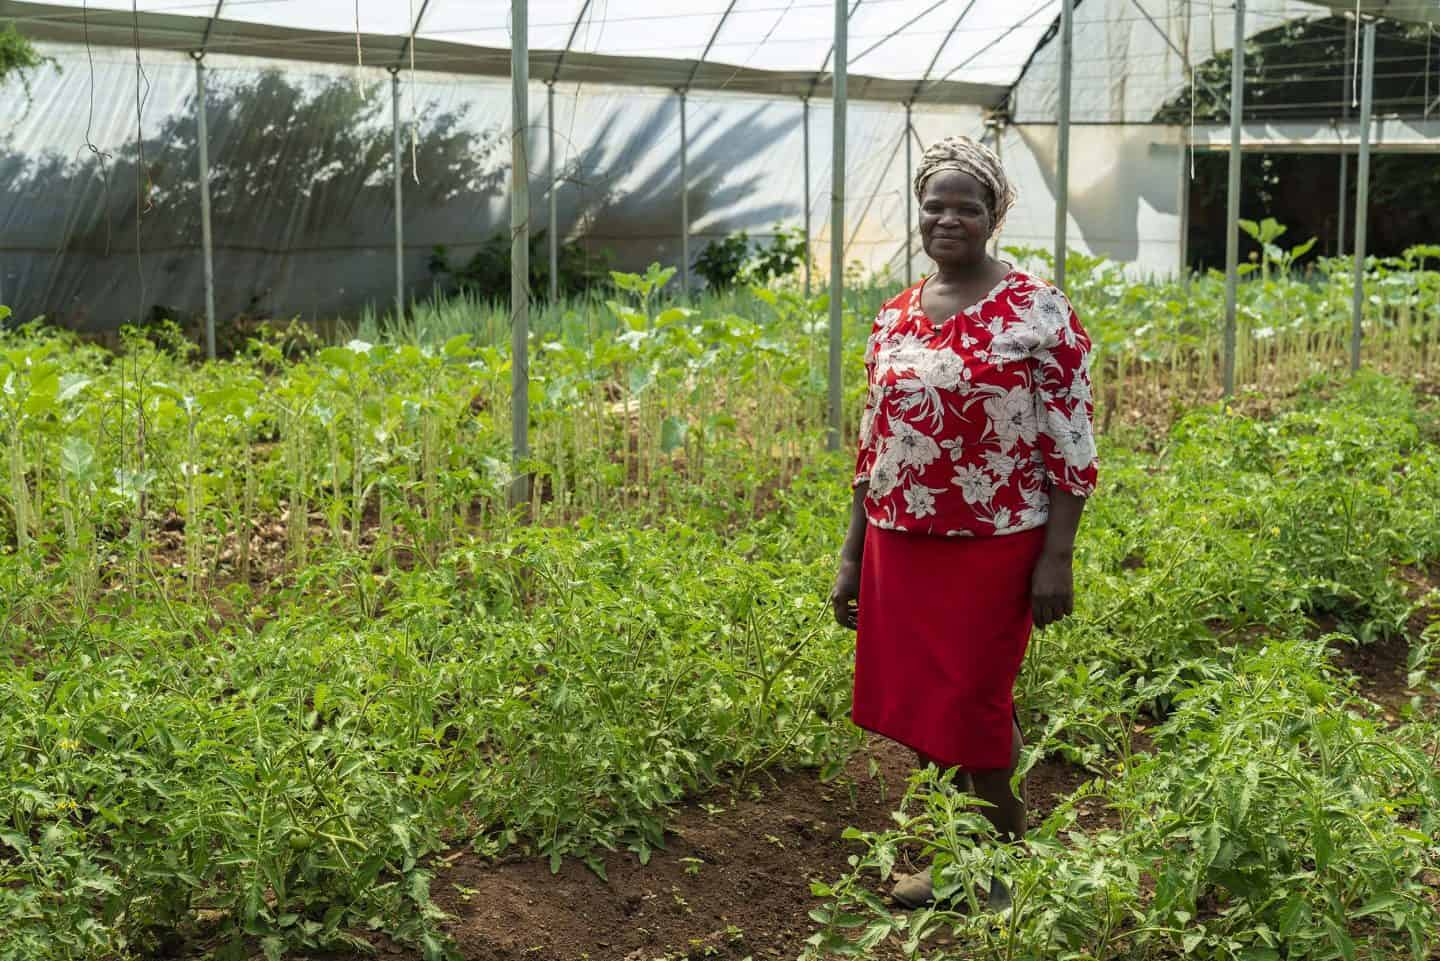 Founder Refiloe Molefe inside a greenhouse flourishing with healthy, organically grown food at the Bertrams Inner City Farm.